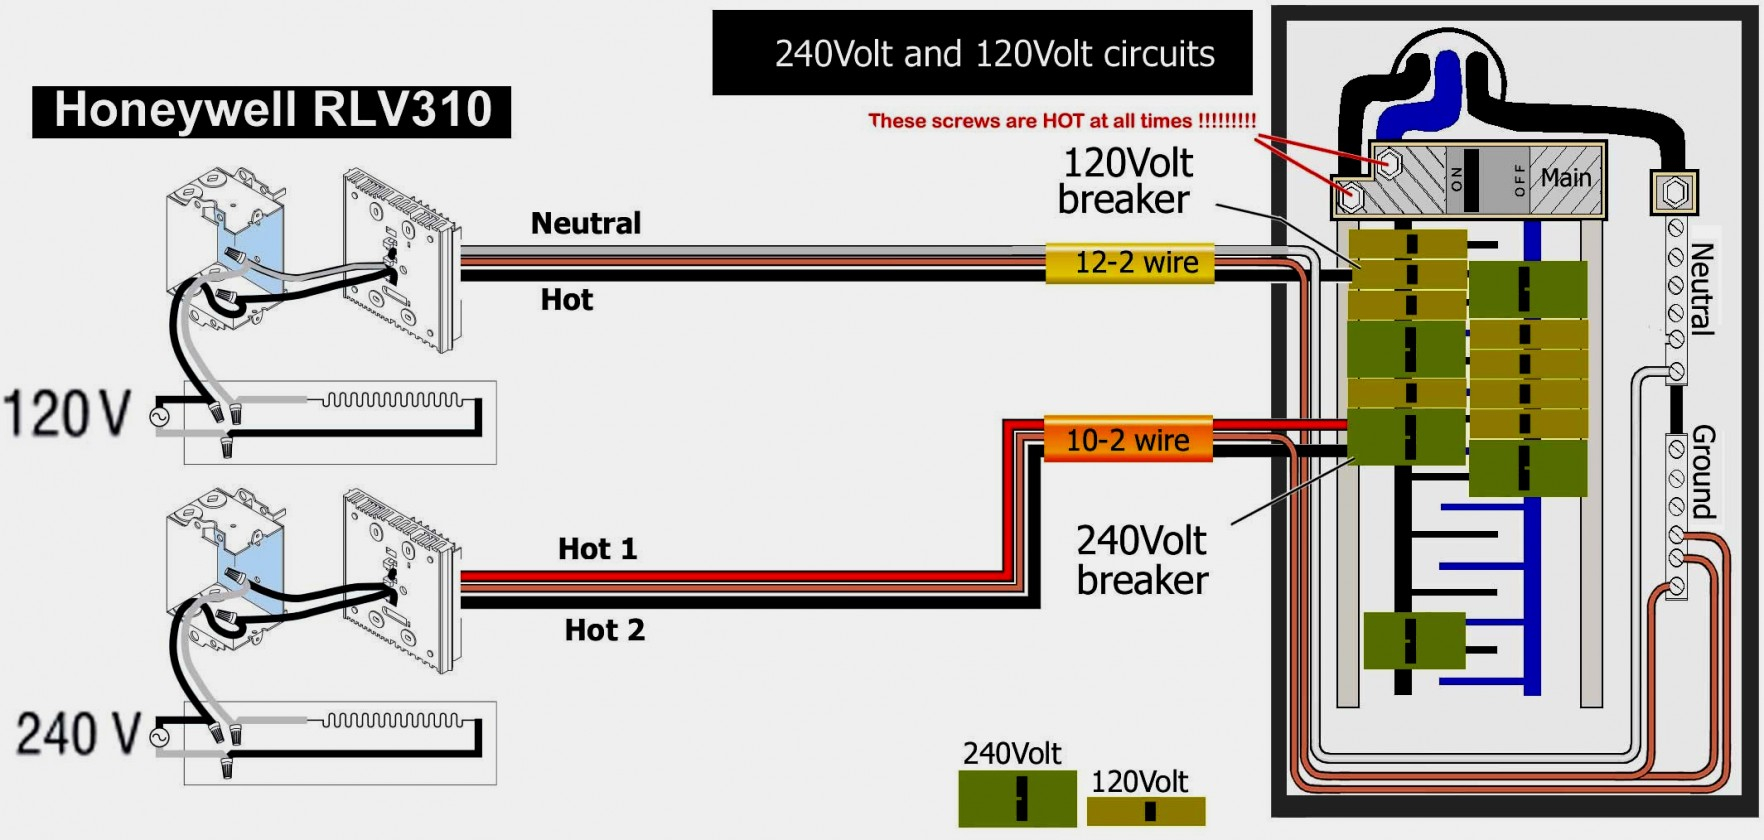 Electric Baseboard Heater Wiring Diagram For 220 | Manual E-Books - Baseboard Heater Wiring Diagram